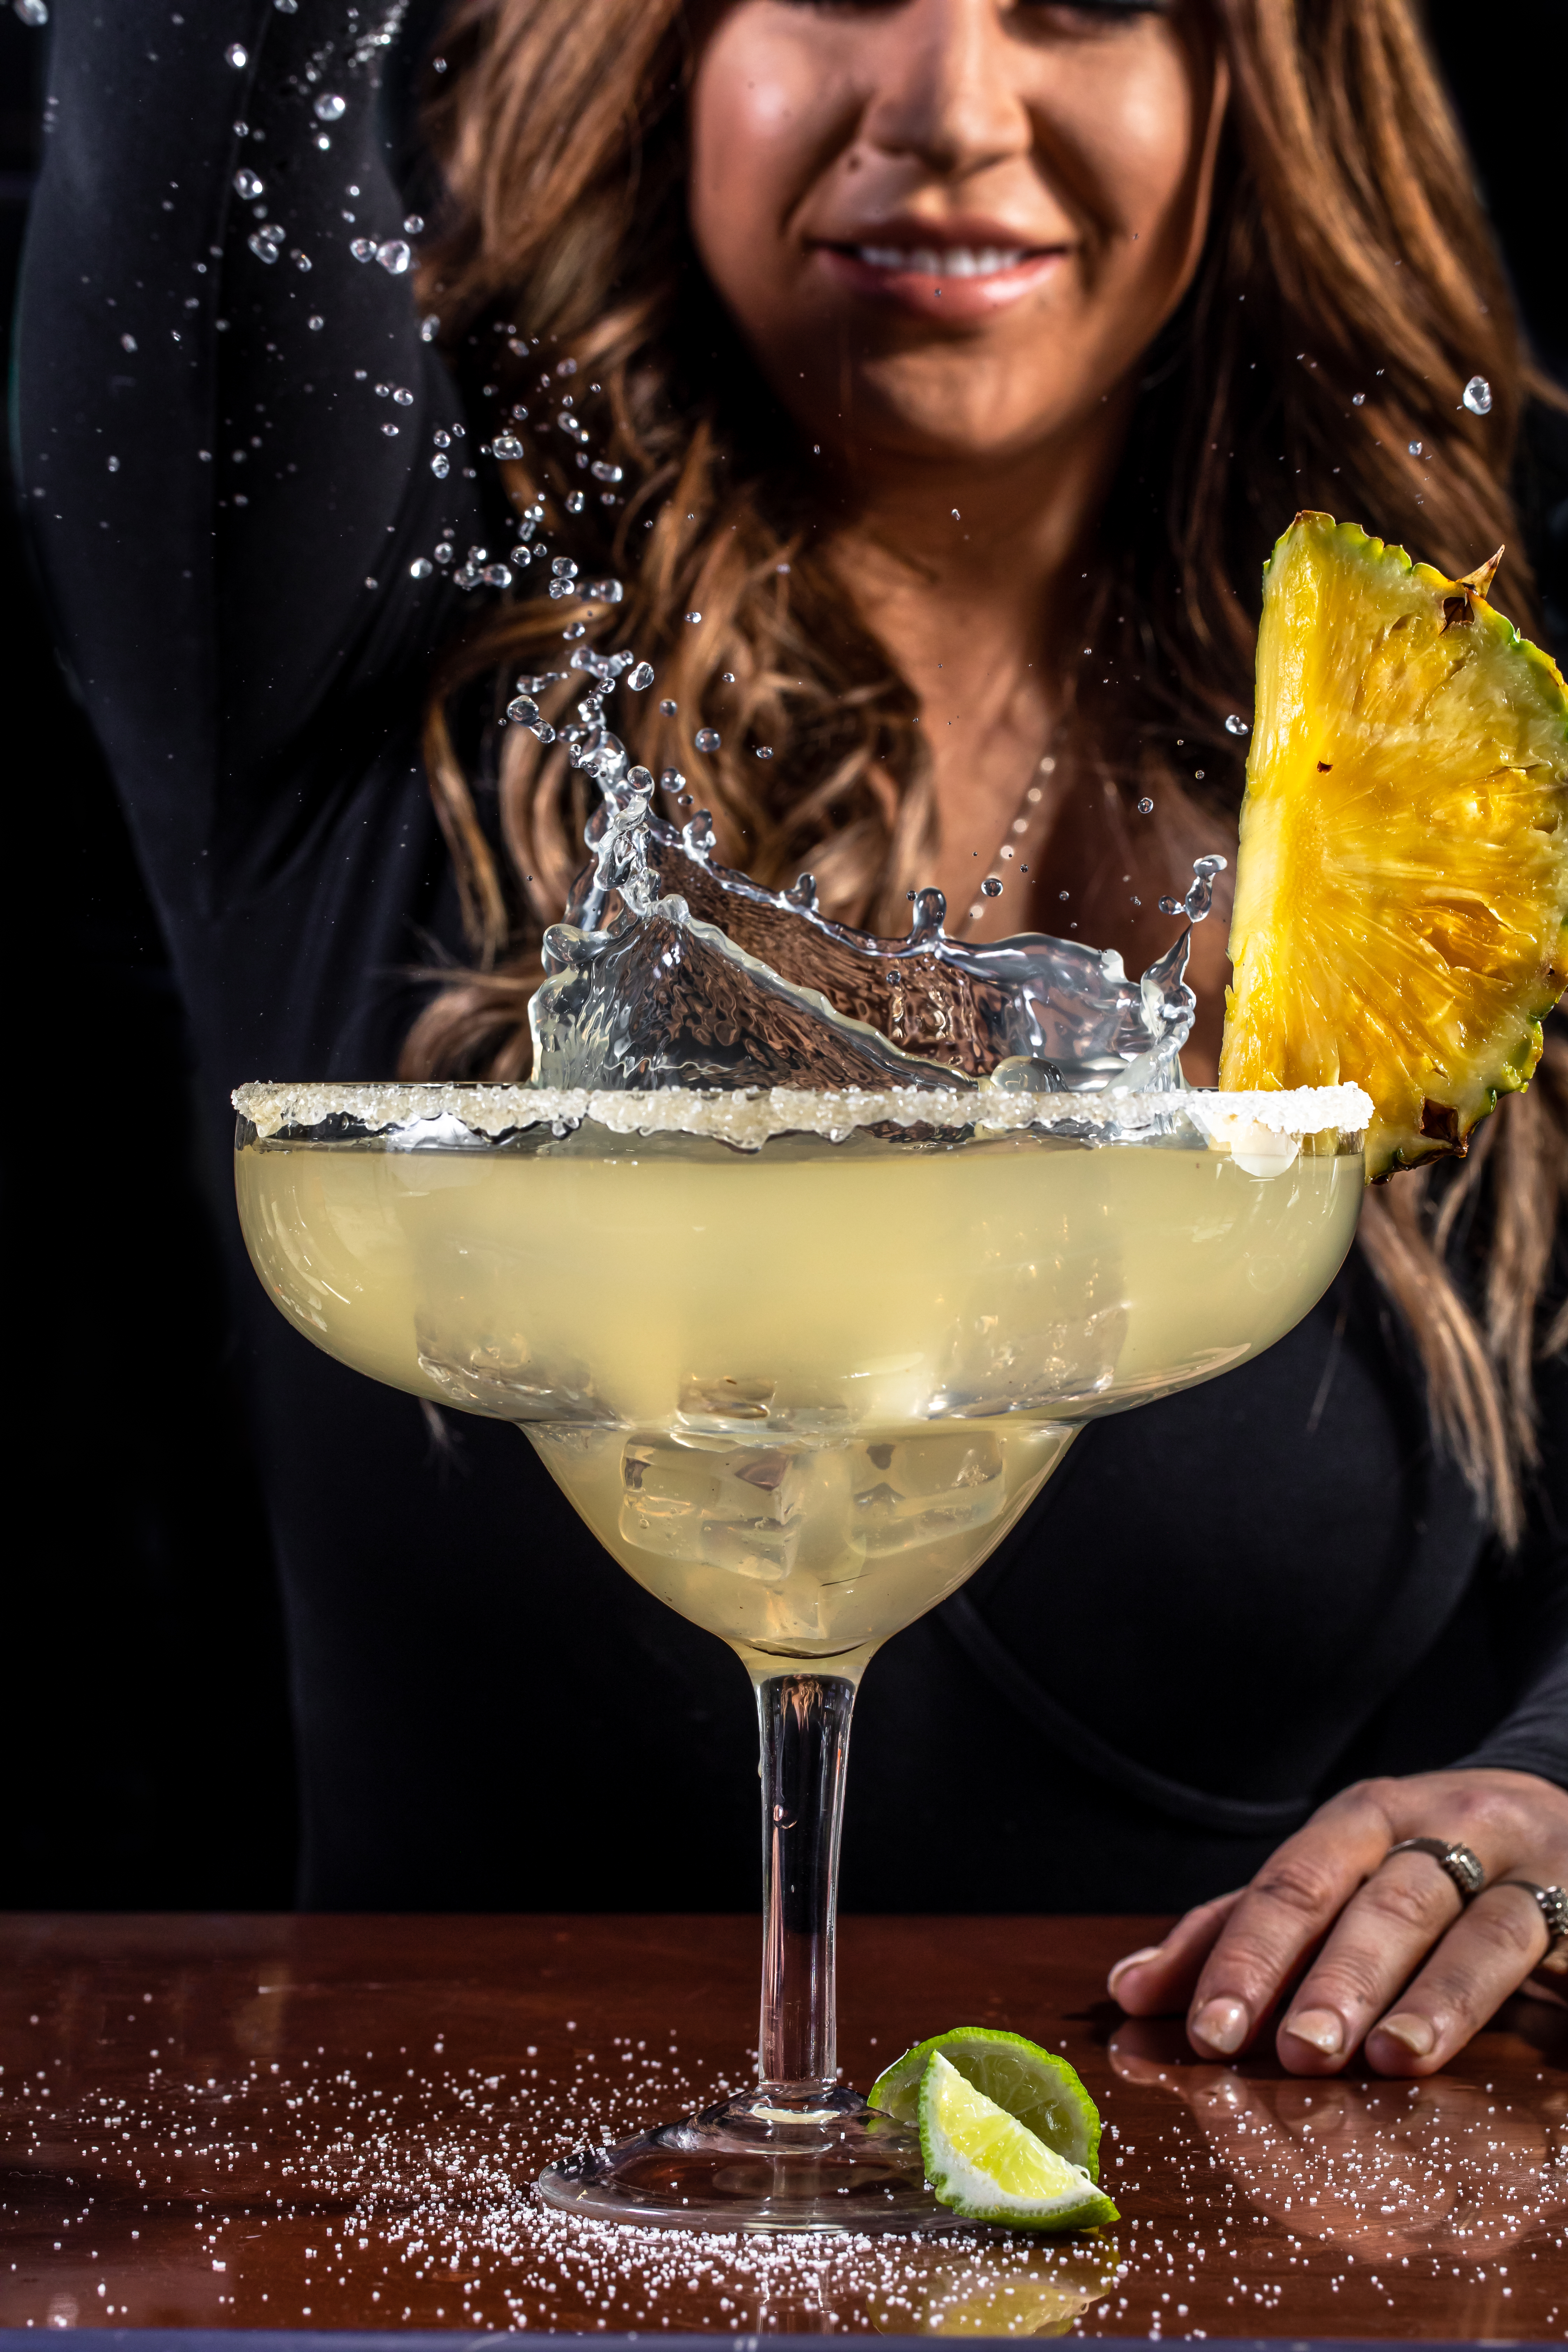 A smiling woman drops an ice cube into a large margarita glass with a pineapple wedge garnish. As the cube hits the the margarita it dramatically splashes out